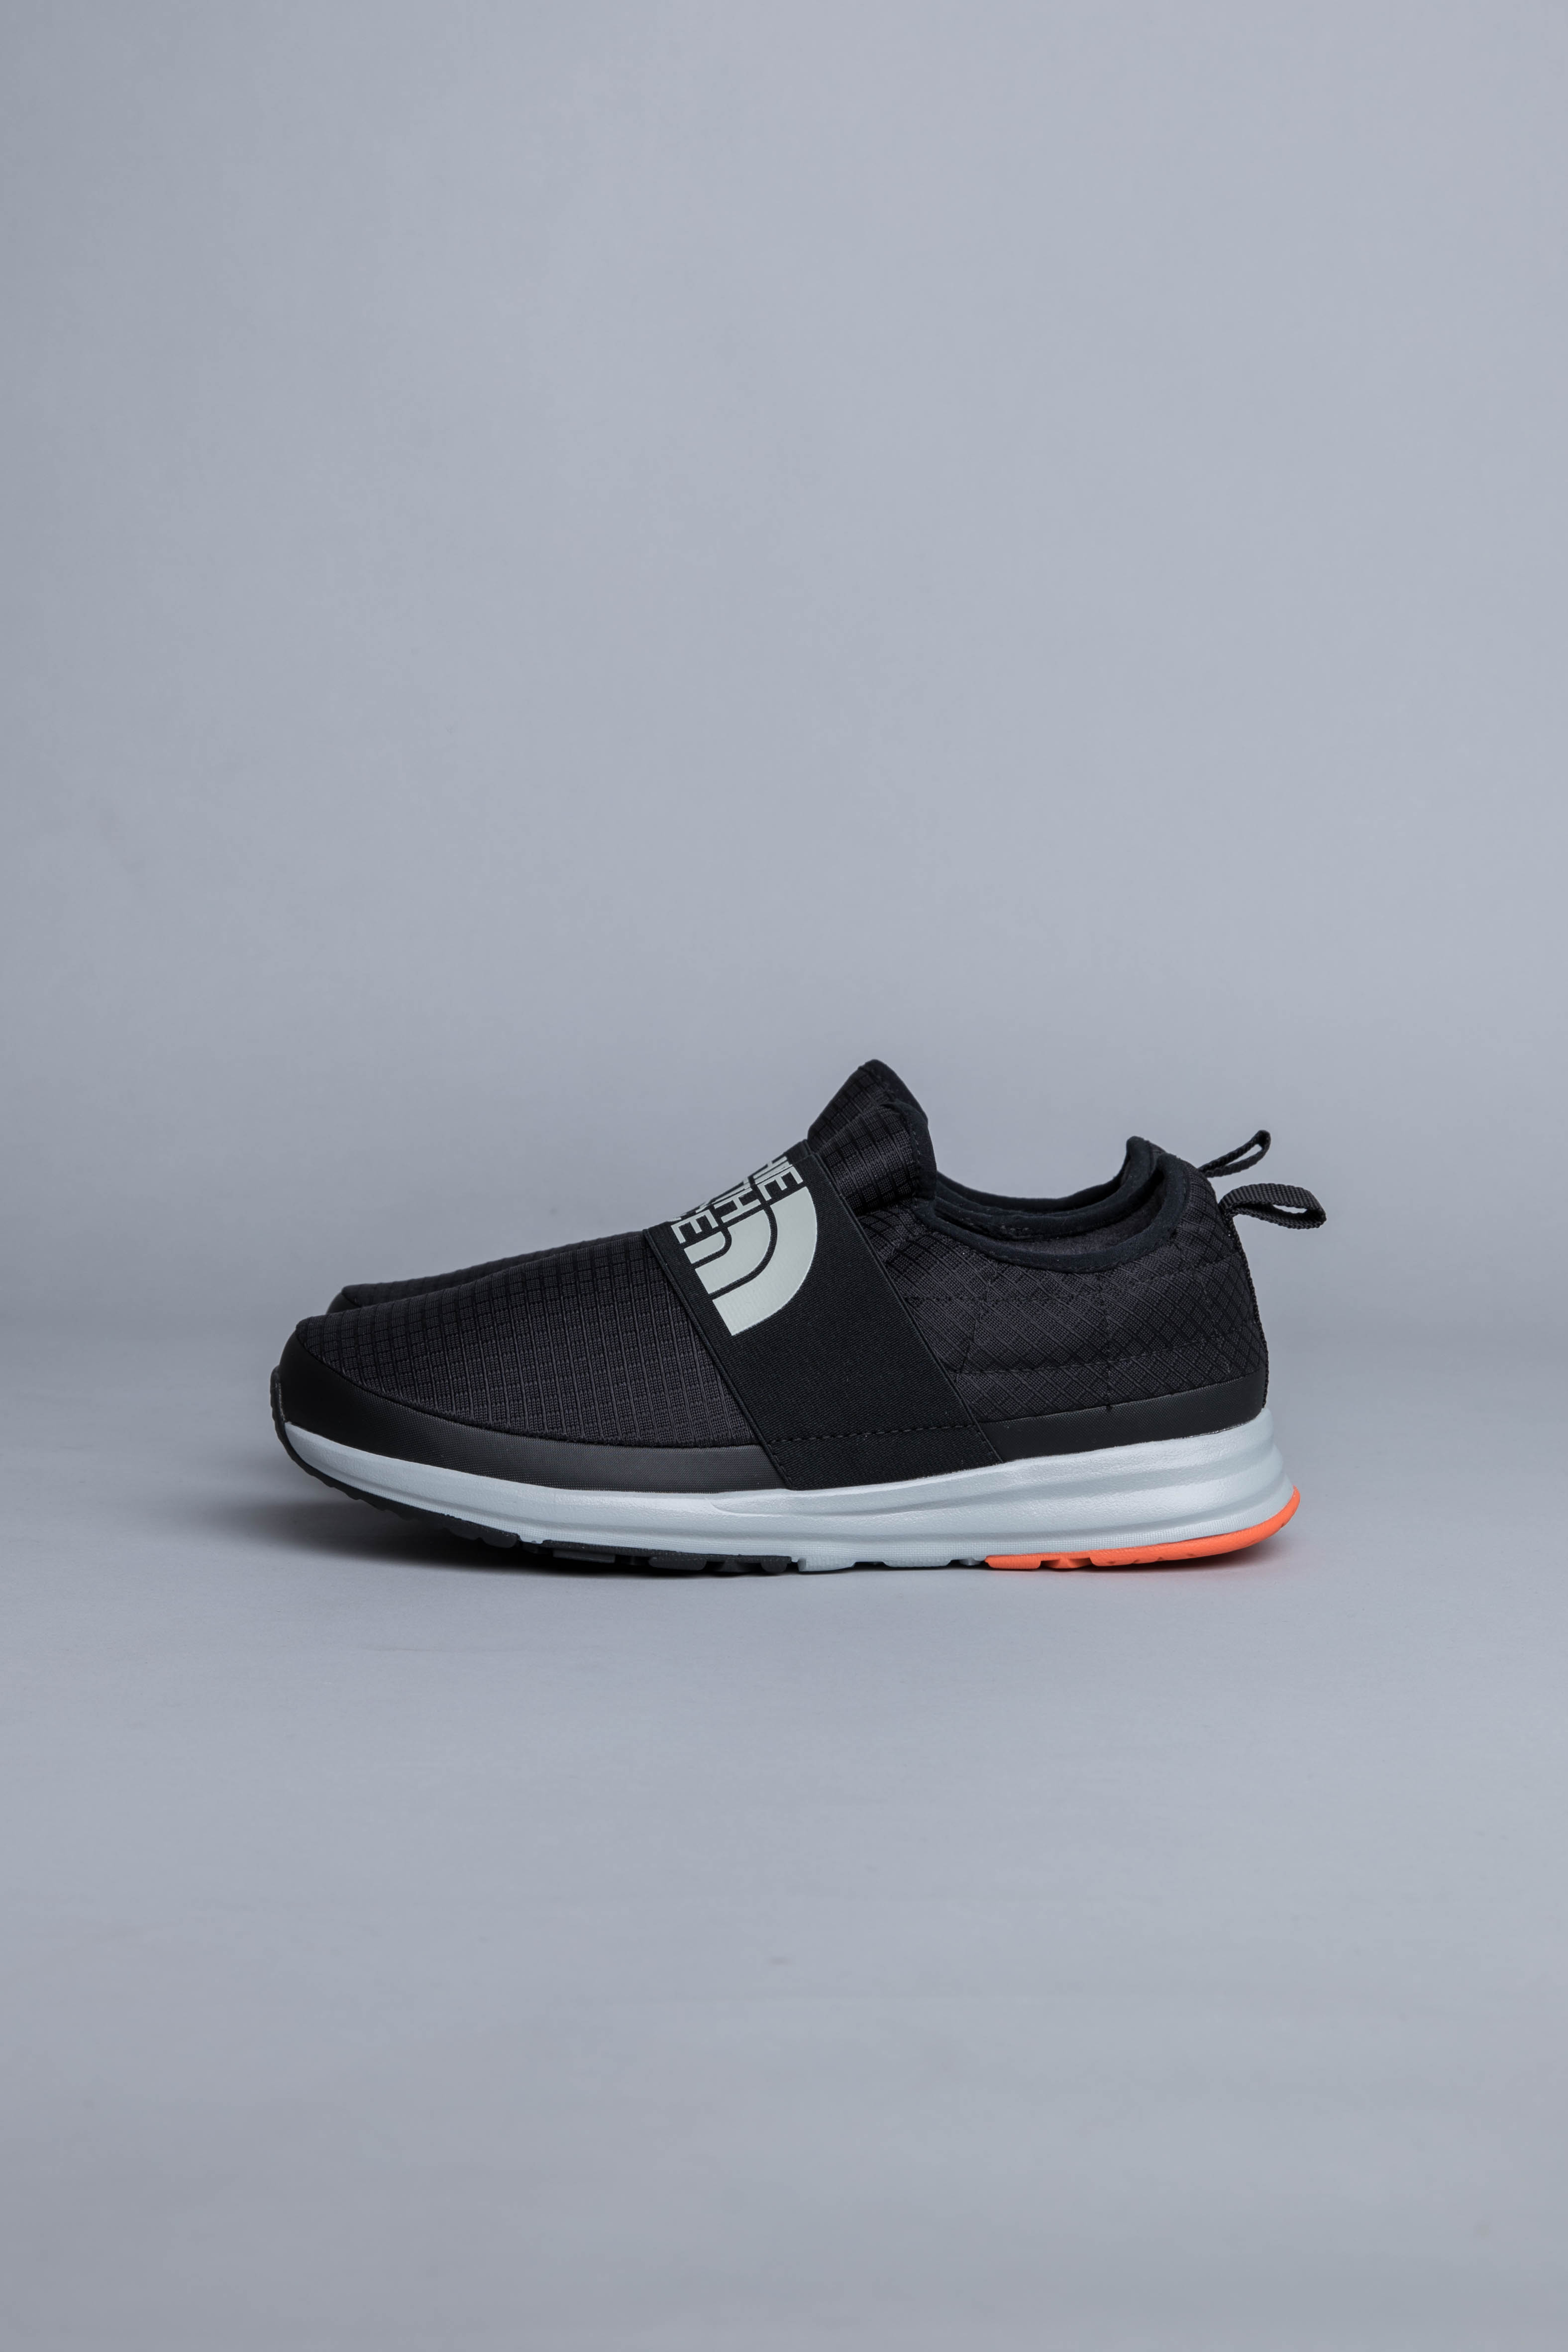 the north face cadman nse moc Online